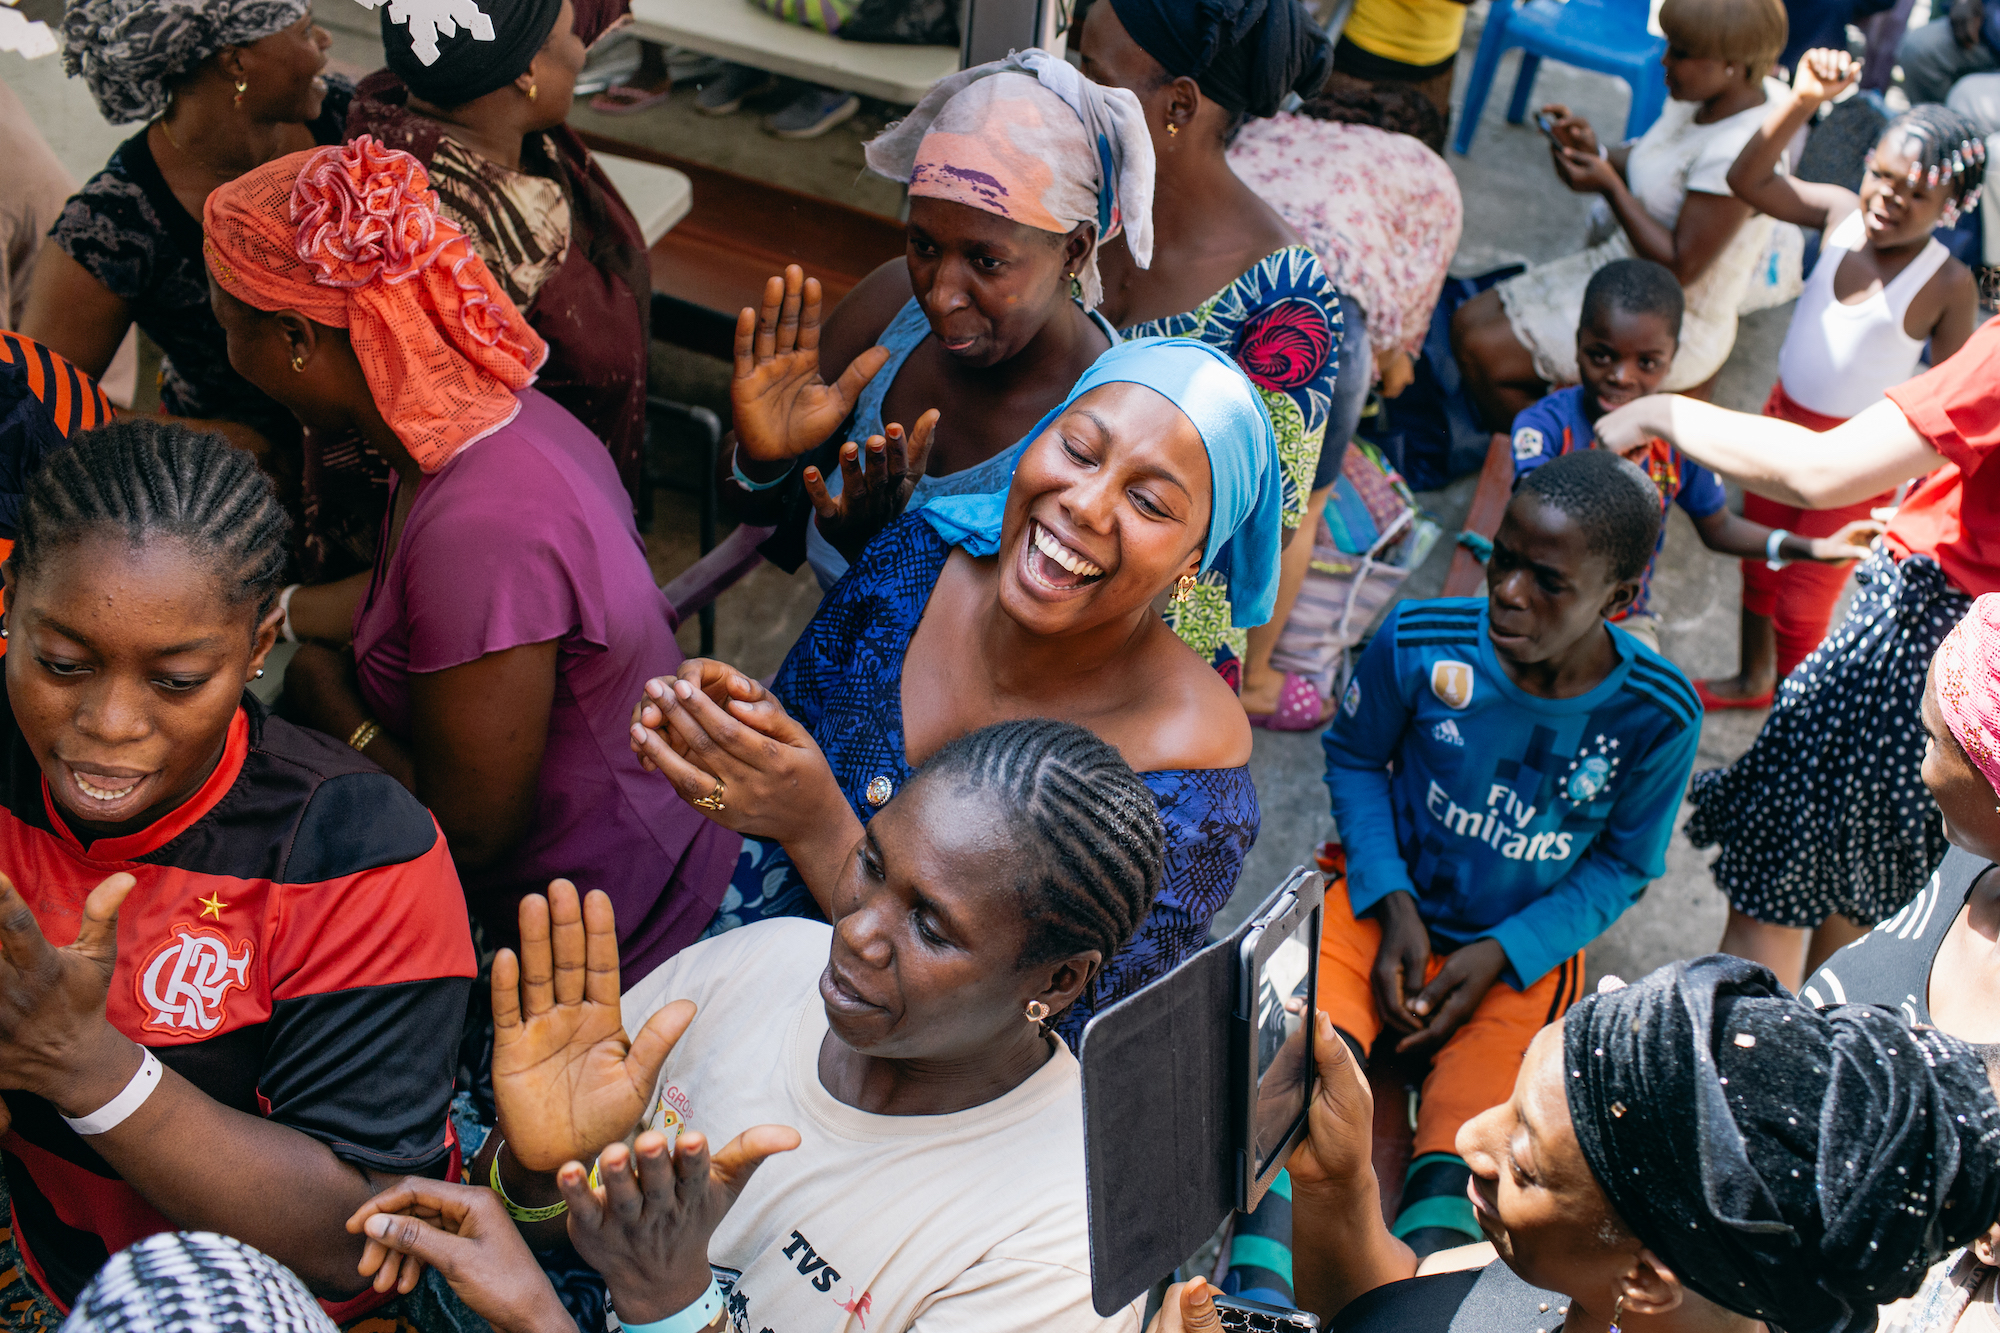 Image: Mercy Ships patients celebrate with singing and dancing after having received Christmas gifts.